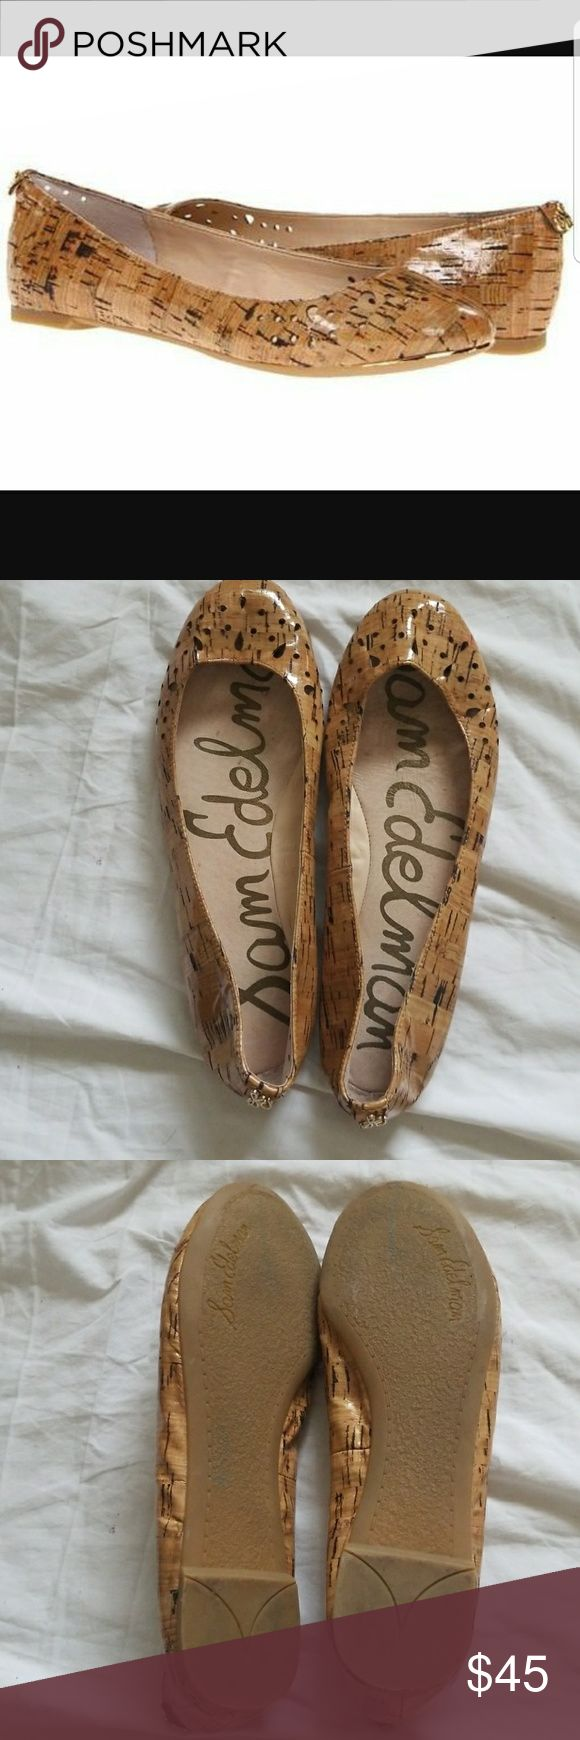 Sam Edelman corkscrew leighton flats Sam Edelman cork screw Leighton flats size 8M.  Shows minor signs of wear but still in good condition.  Has stains on inside, see pic.  But overall in good condition.  Still has shine.  Perferorated design around the heel and toes.  100% authentic.  Great with jeans or dress.  No shoebox.  No trade or PayPal. Sam Edelman Shoes Flats & Loafers